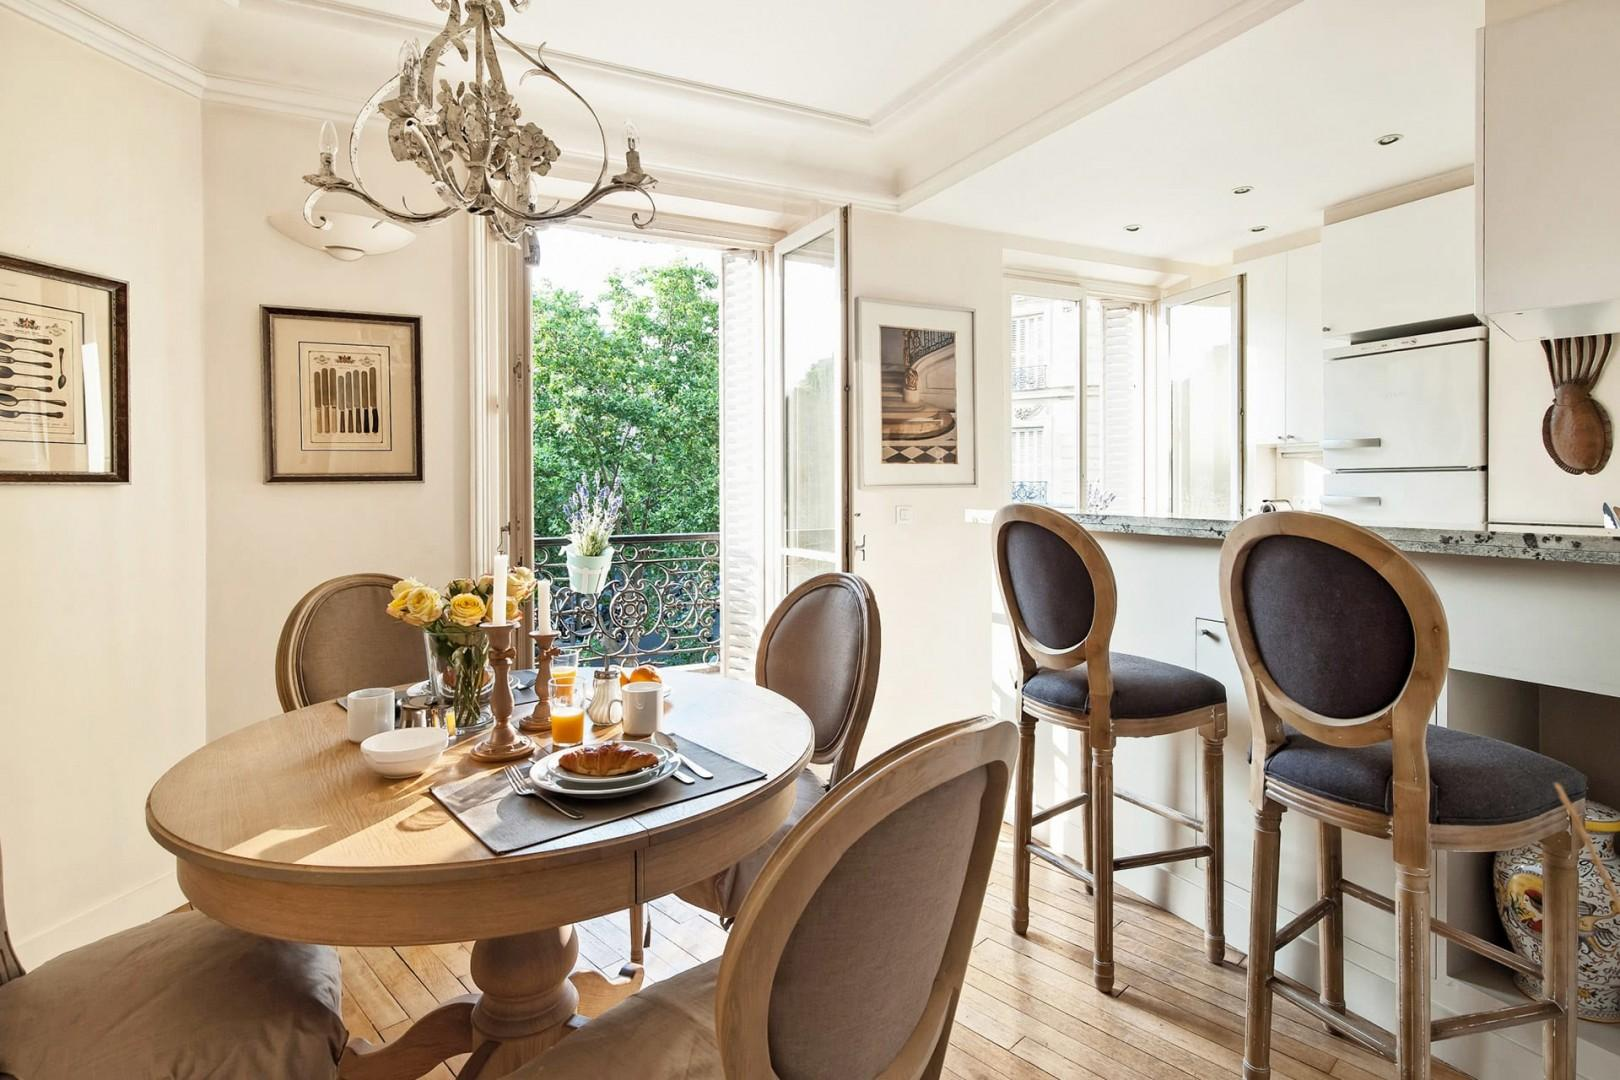 The dining table is conveniently located next to the kitchen.